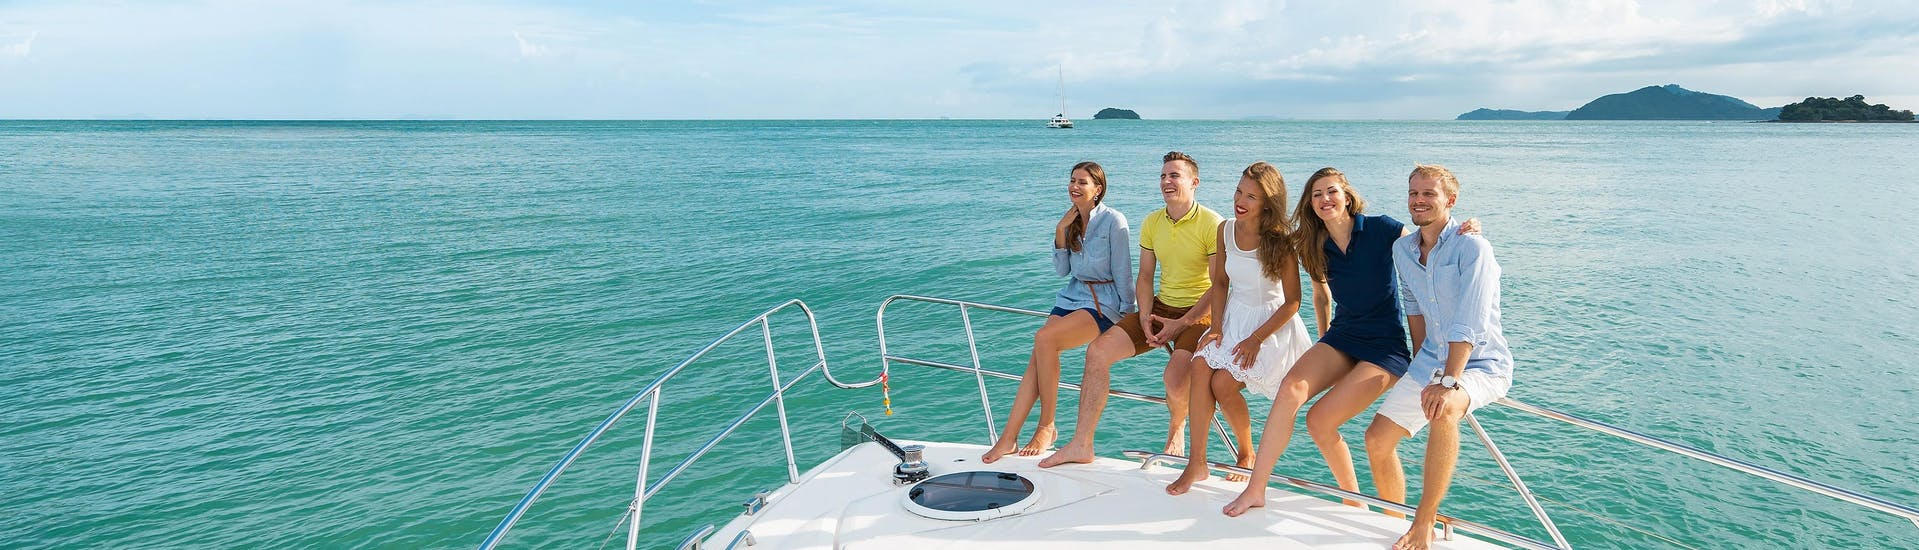 Happy people enjoying their time on a boat tour on the ocean